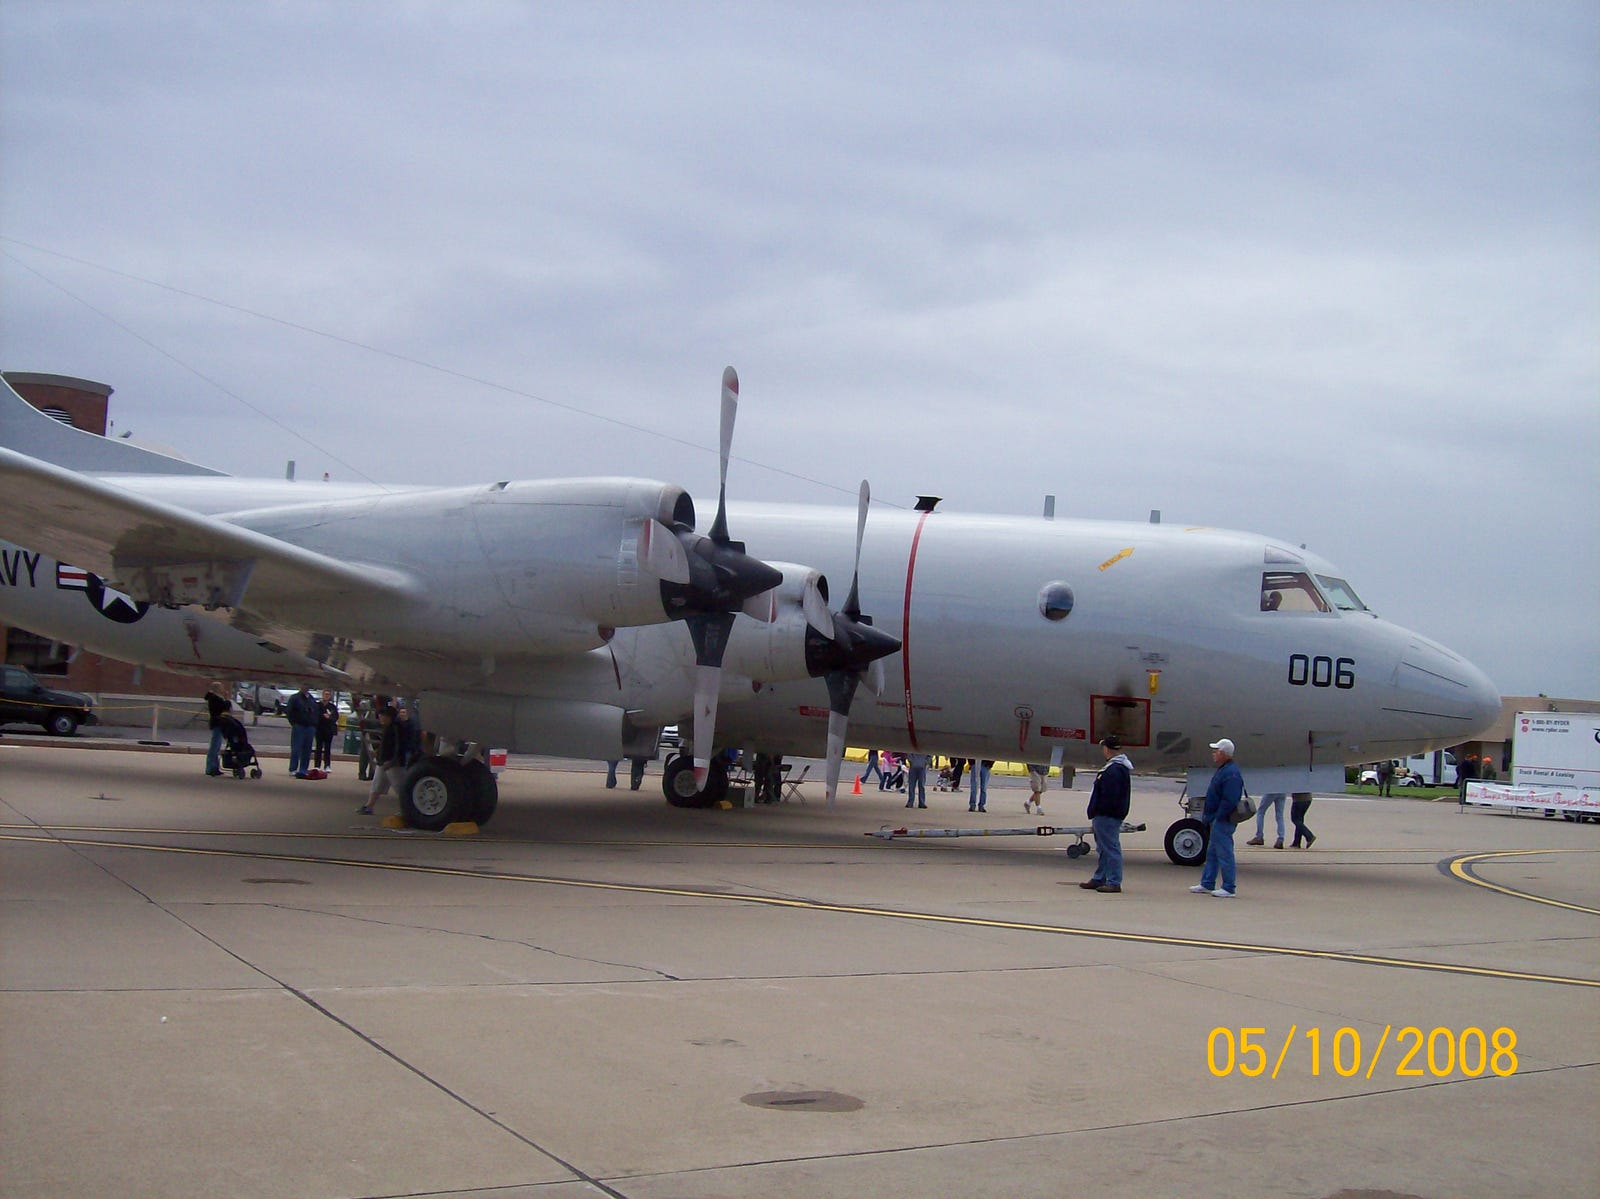 Lockheed P-3C Orion, delivered in 1979